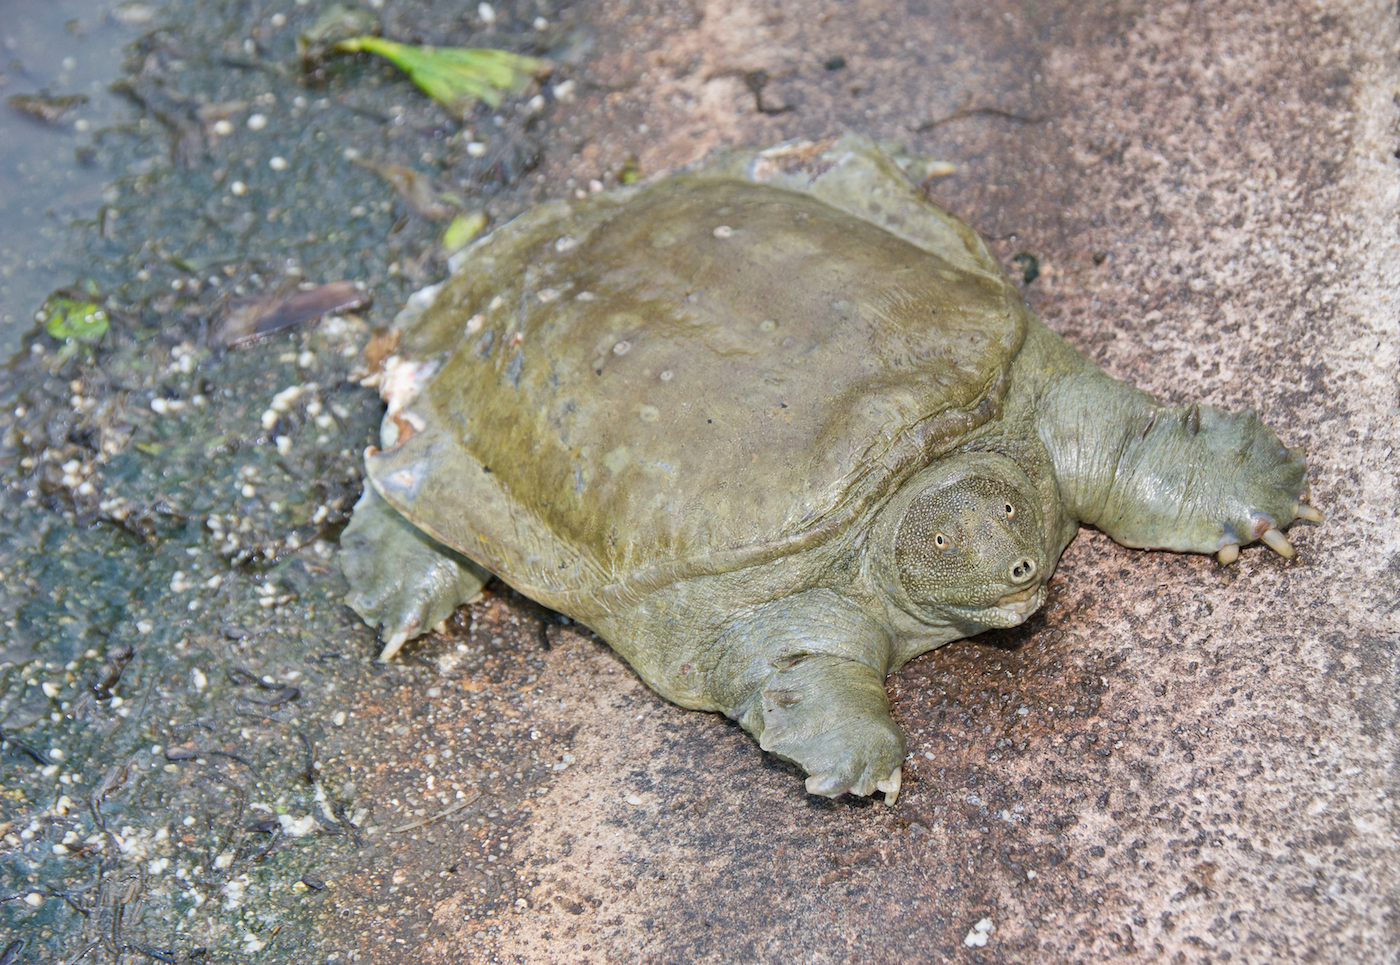 Soft shelled turtles, considered a delicacy in China, are likely spreading cholera, according to a new study.